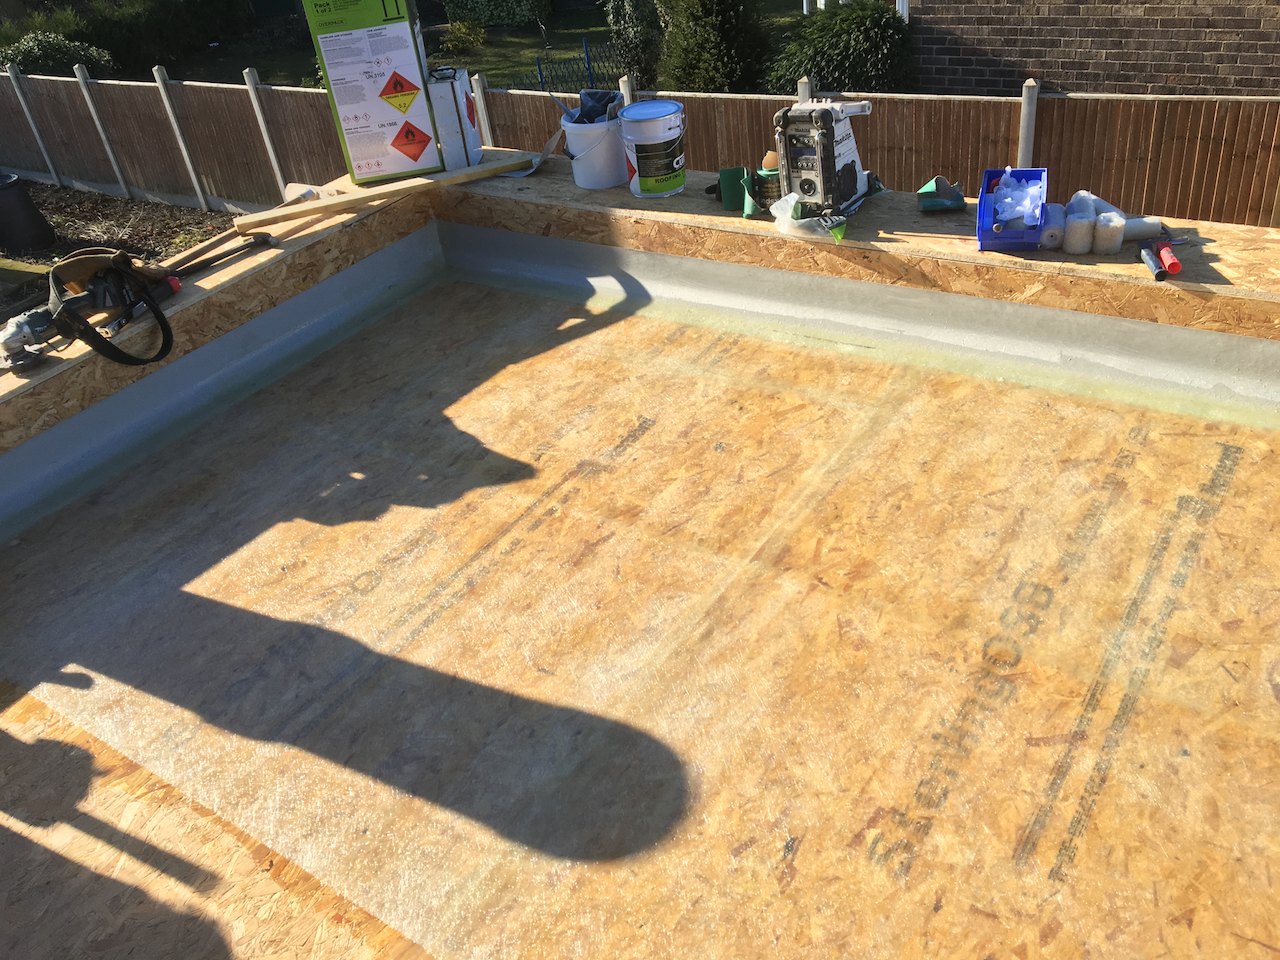 https://www.bluedotroofing.uk/wp-content/uploads/2018/02/grp-flat-roof-marton-lincolnshire-8.png